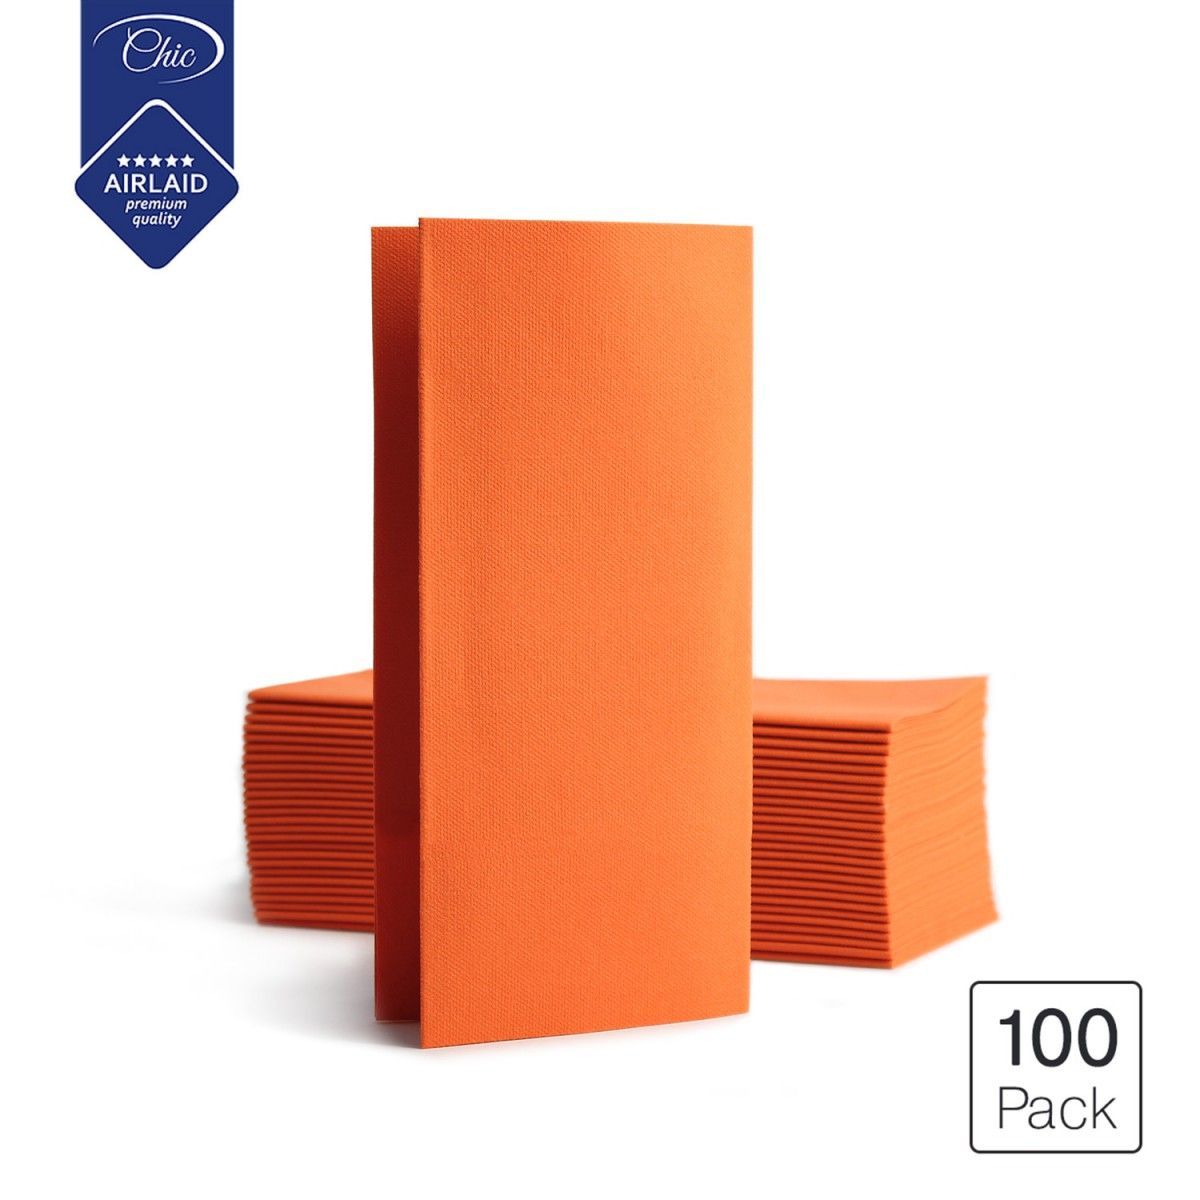 SETI Deluxe Folded Disposable Linen-Feel Airlaid Dinner Party Paper Napkins, Orange, 100-Pack – Dini